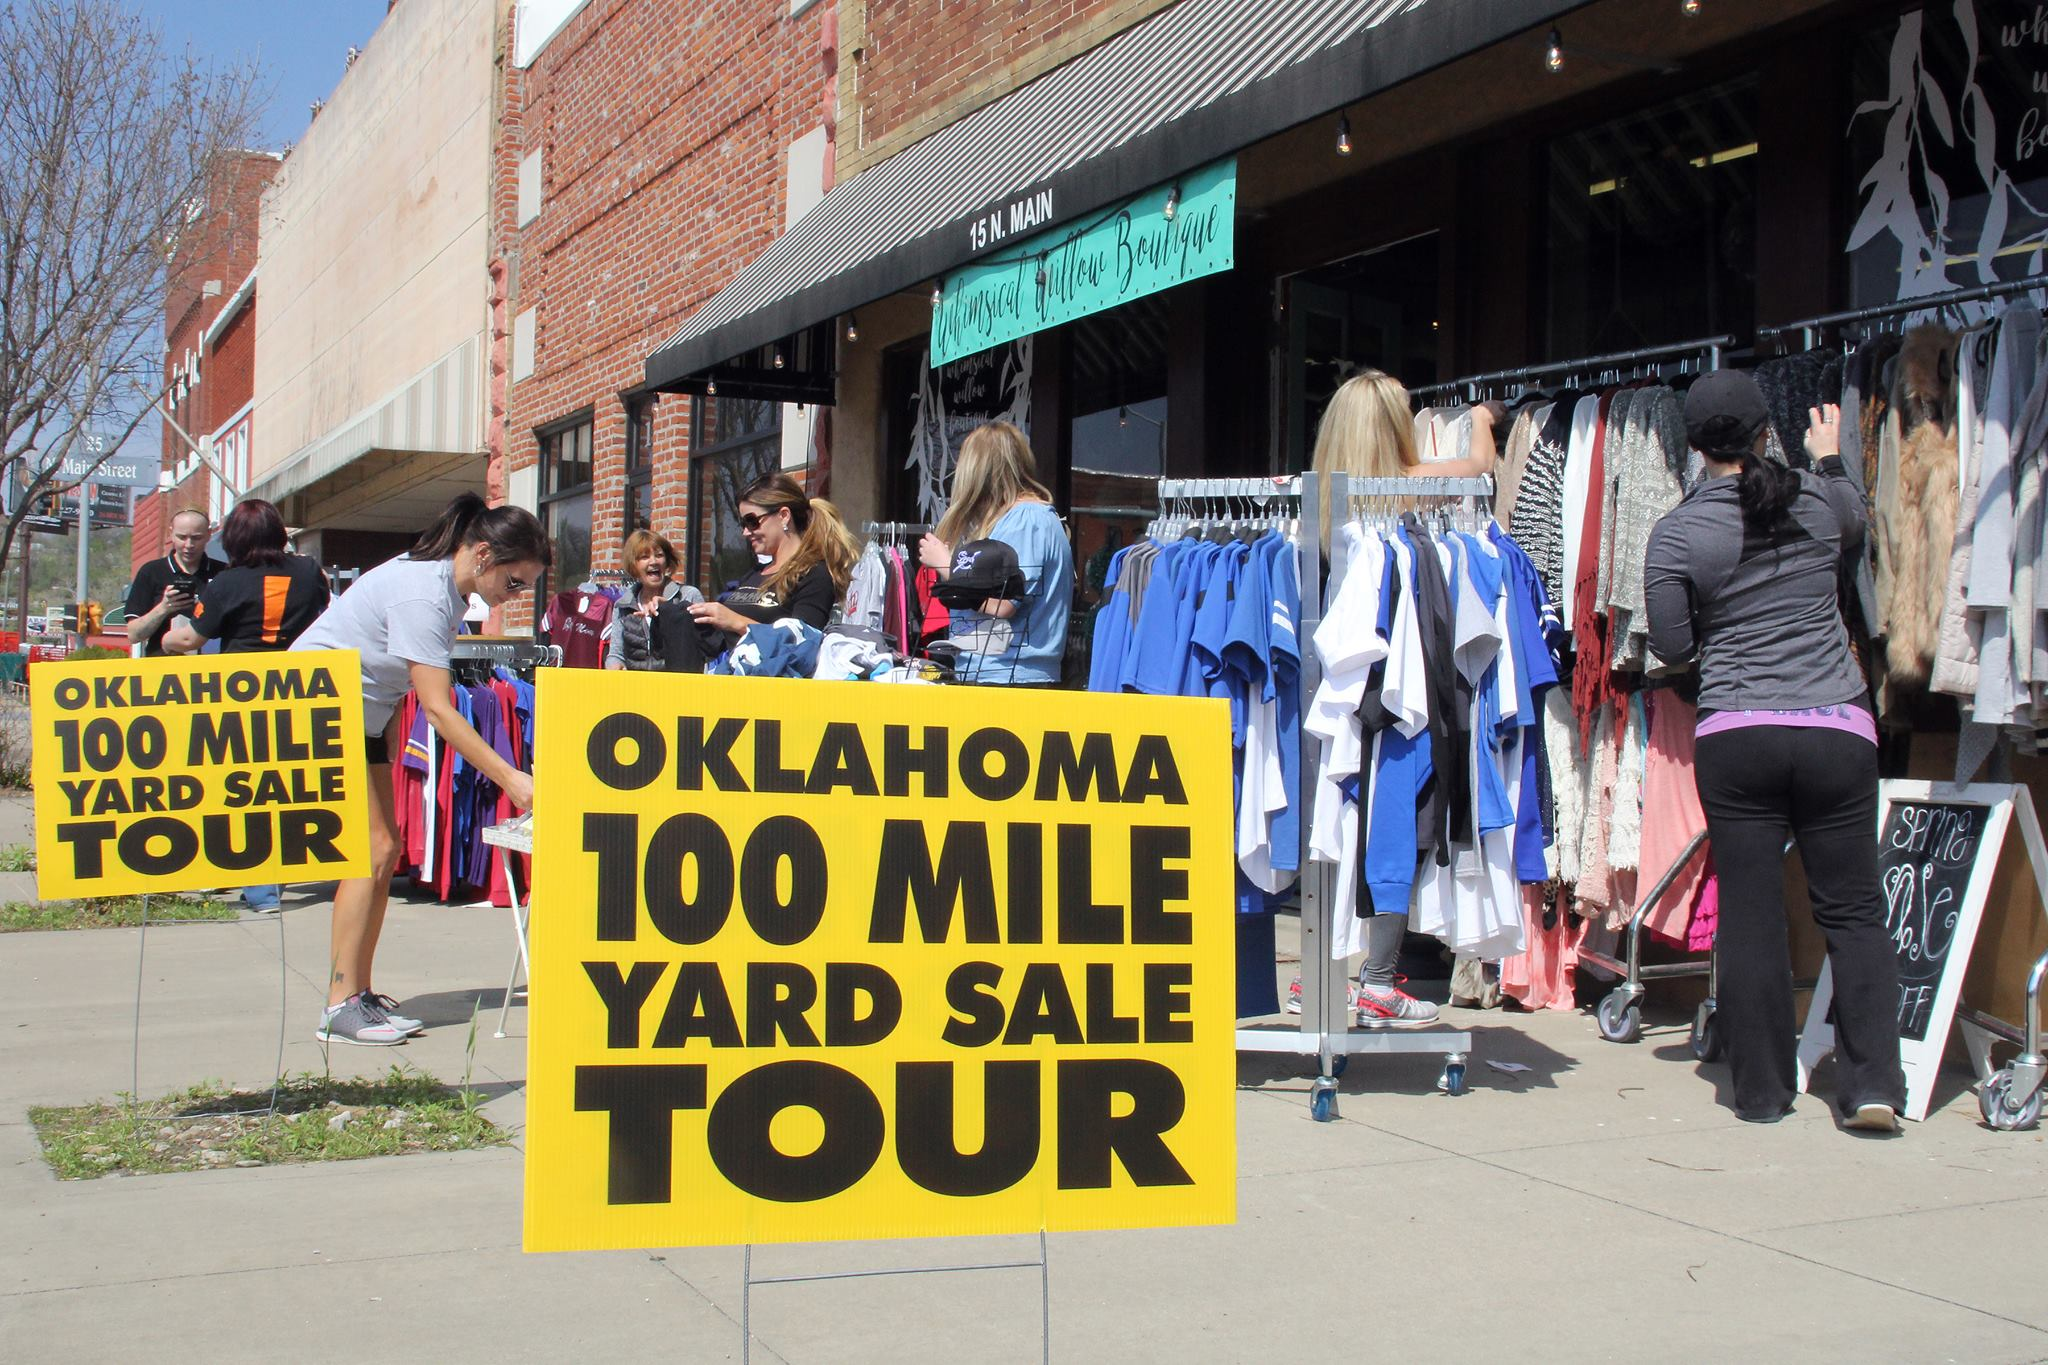 100-Mile Garage Sale Starts This Friday – Sapulpa Times on city sports, city painting, city clothes, city bbq, city alarm systems sale, city direct tv sale, city vintage, city wide gargae sale, city events, city photography, city wide yard sale,